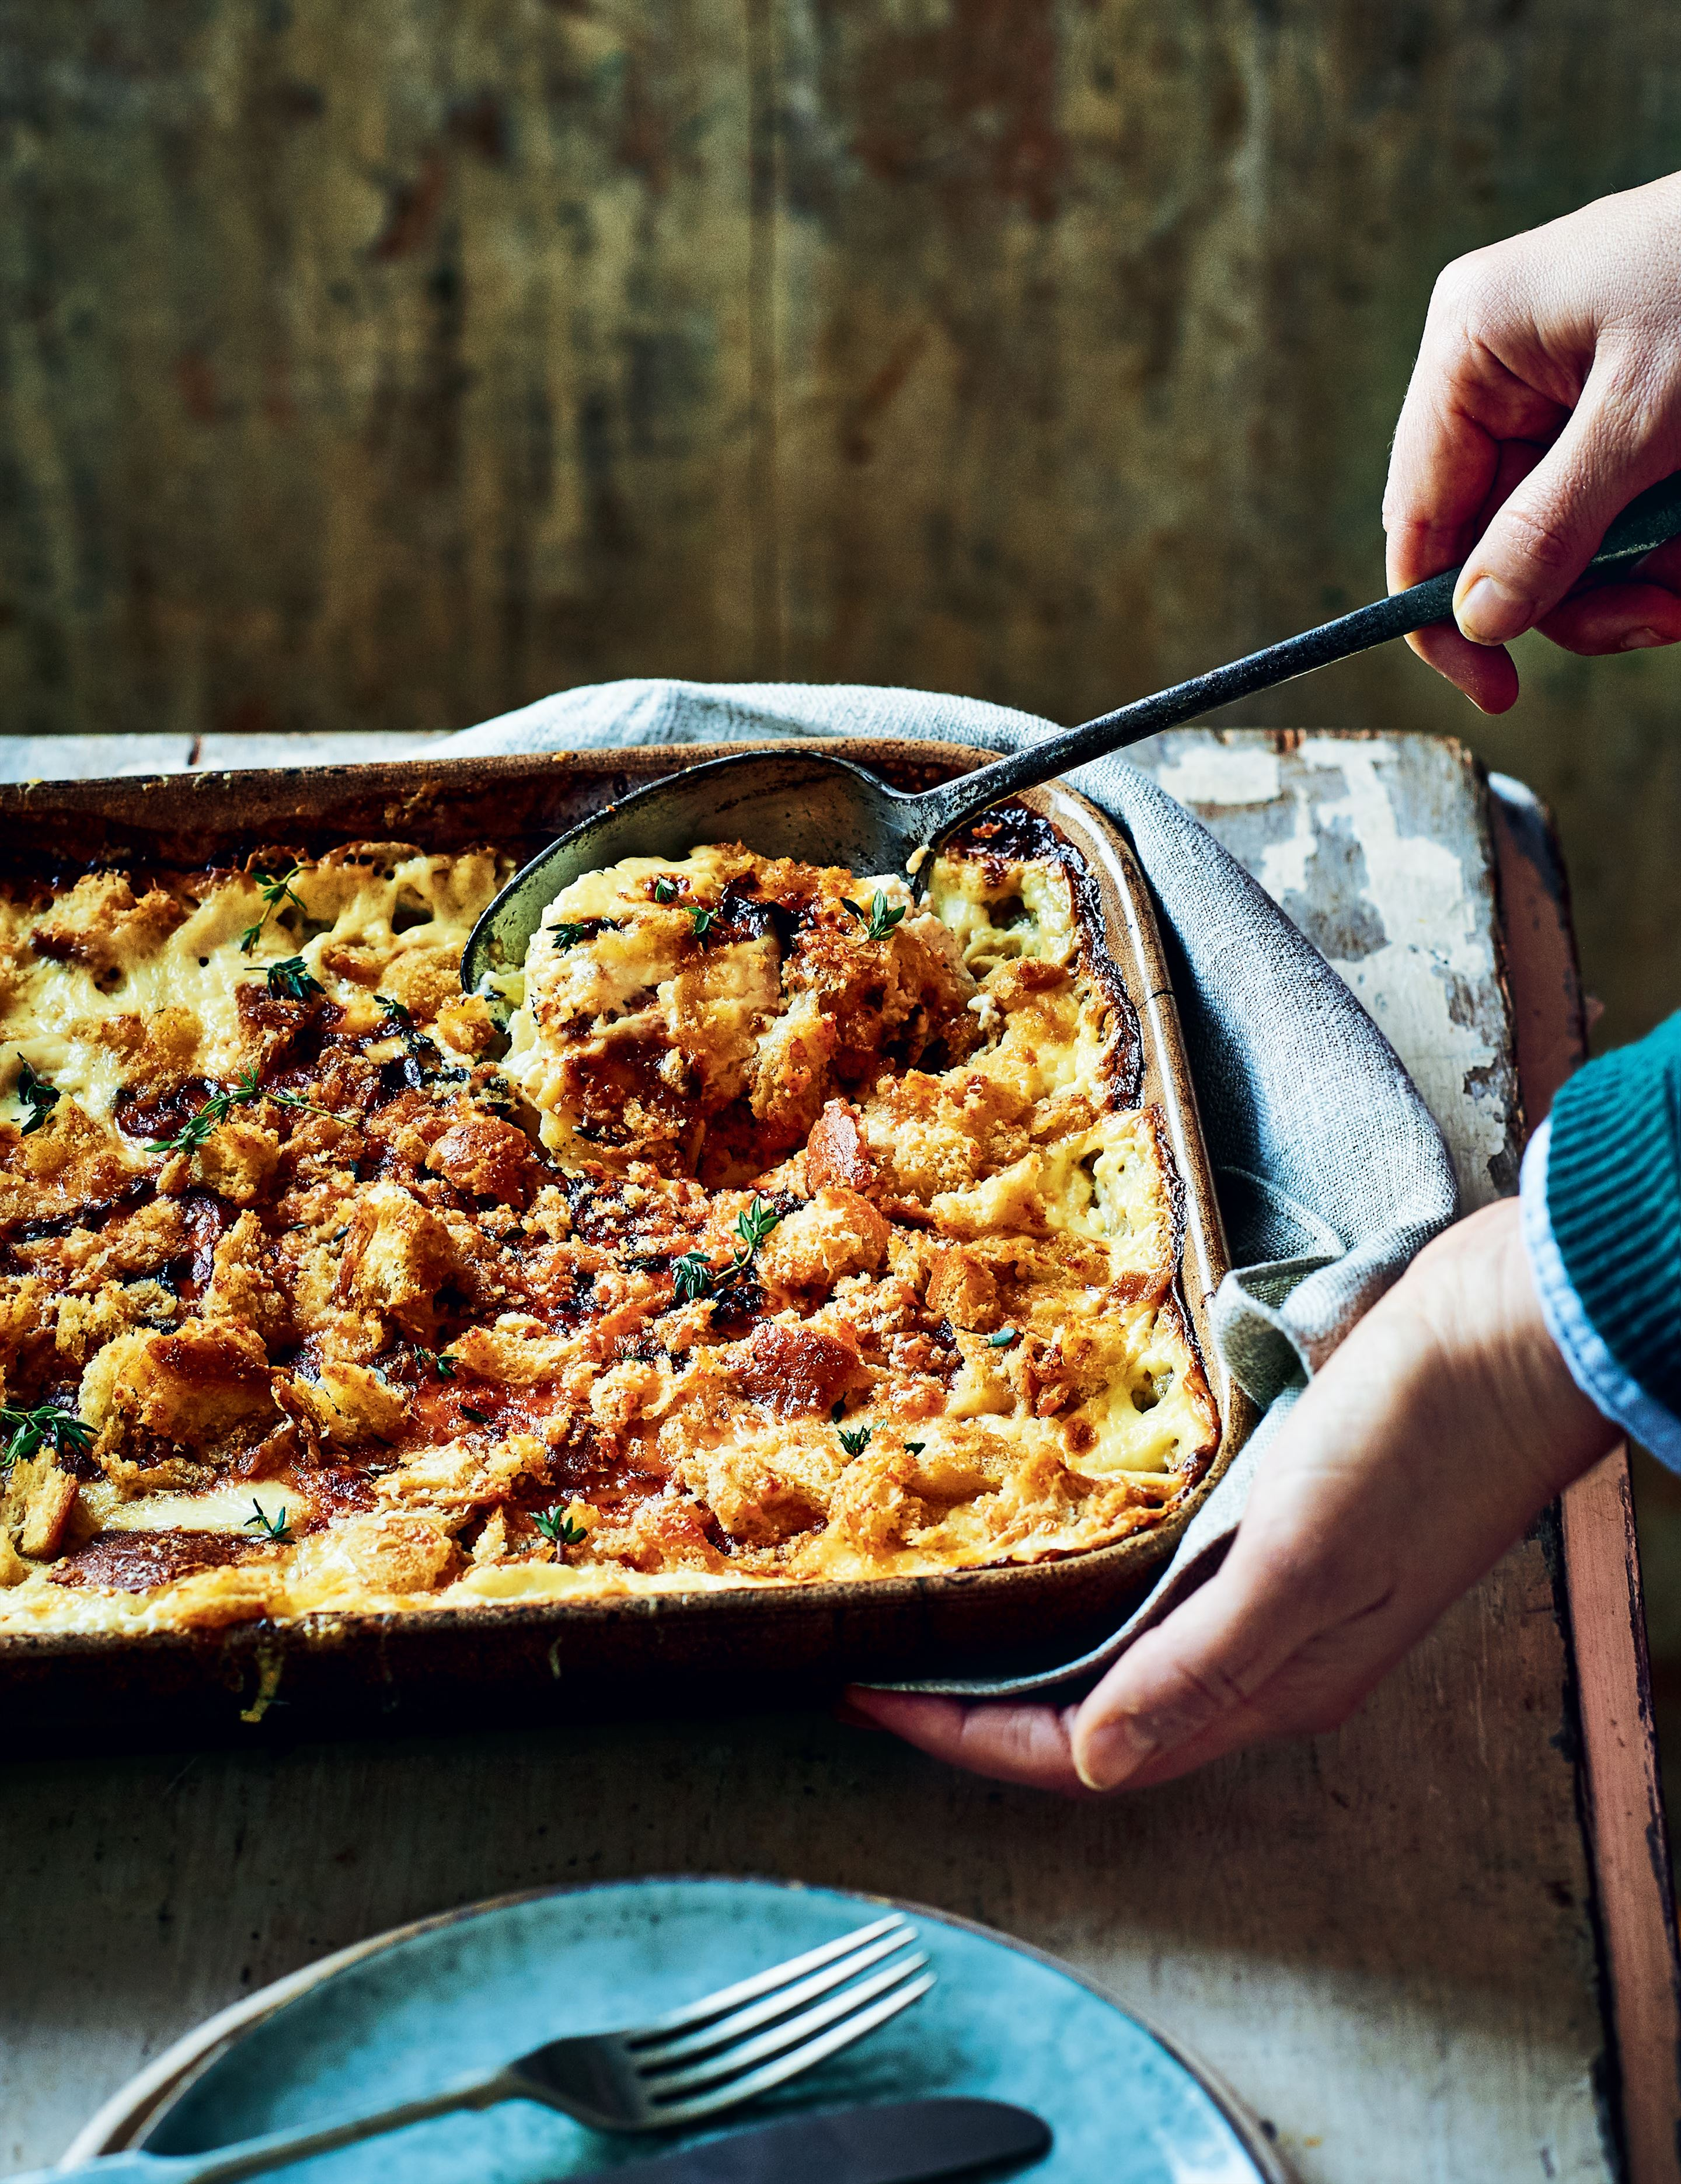 Celeriac, potato and anchovy gratin